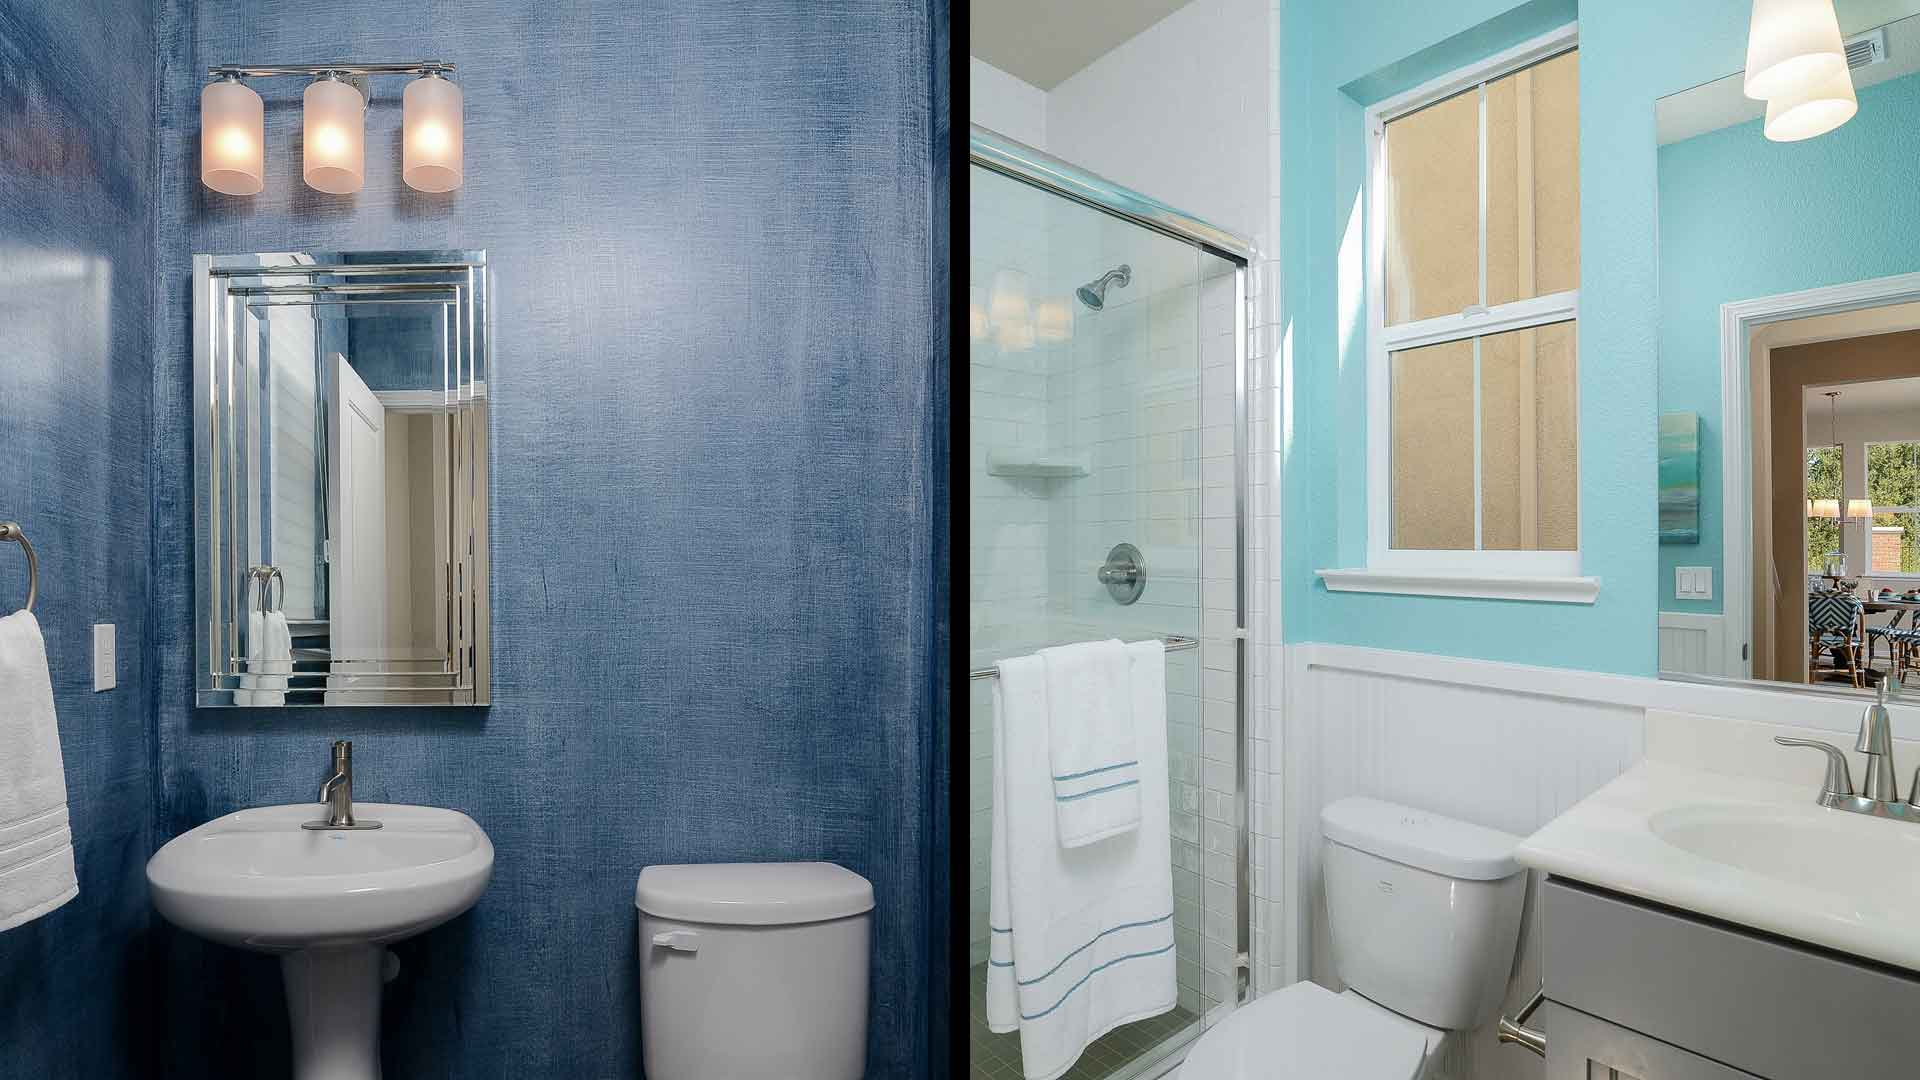 Blue Bathrooms homes with blue bathrooms sell for more, zillow study finds